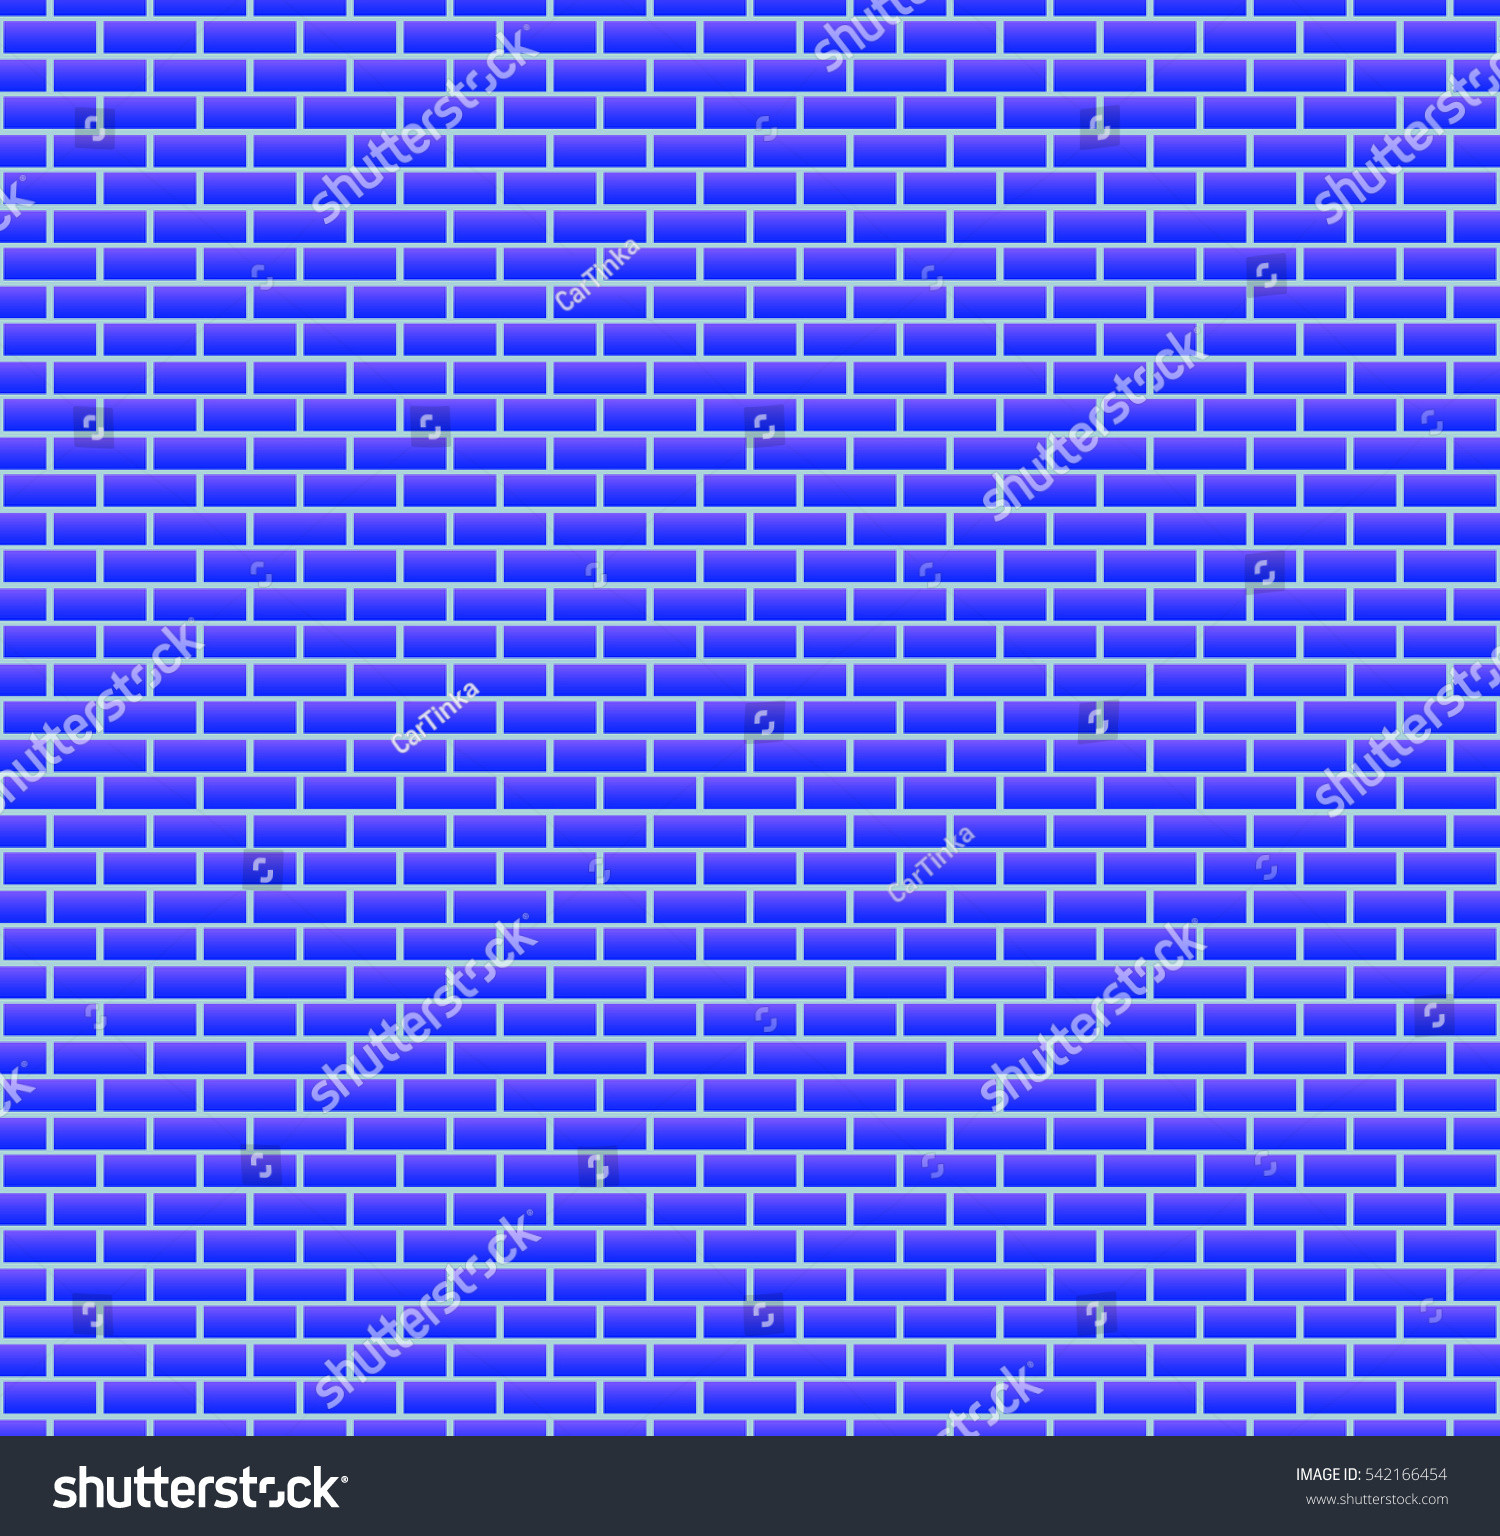 Background Blue Brick Wall Seamless Wallpaper 542166454